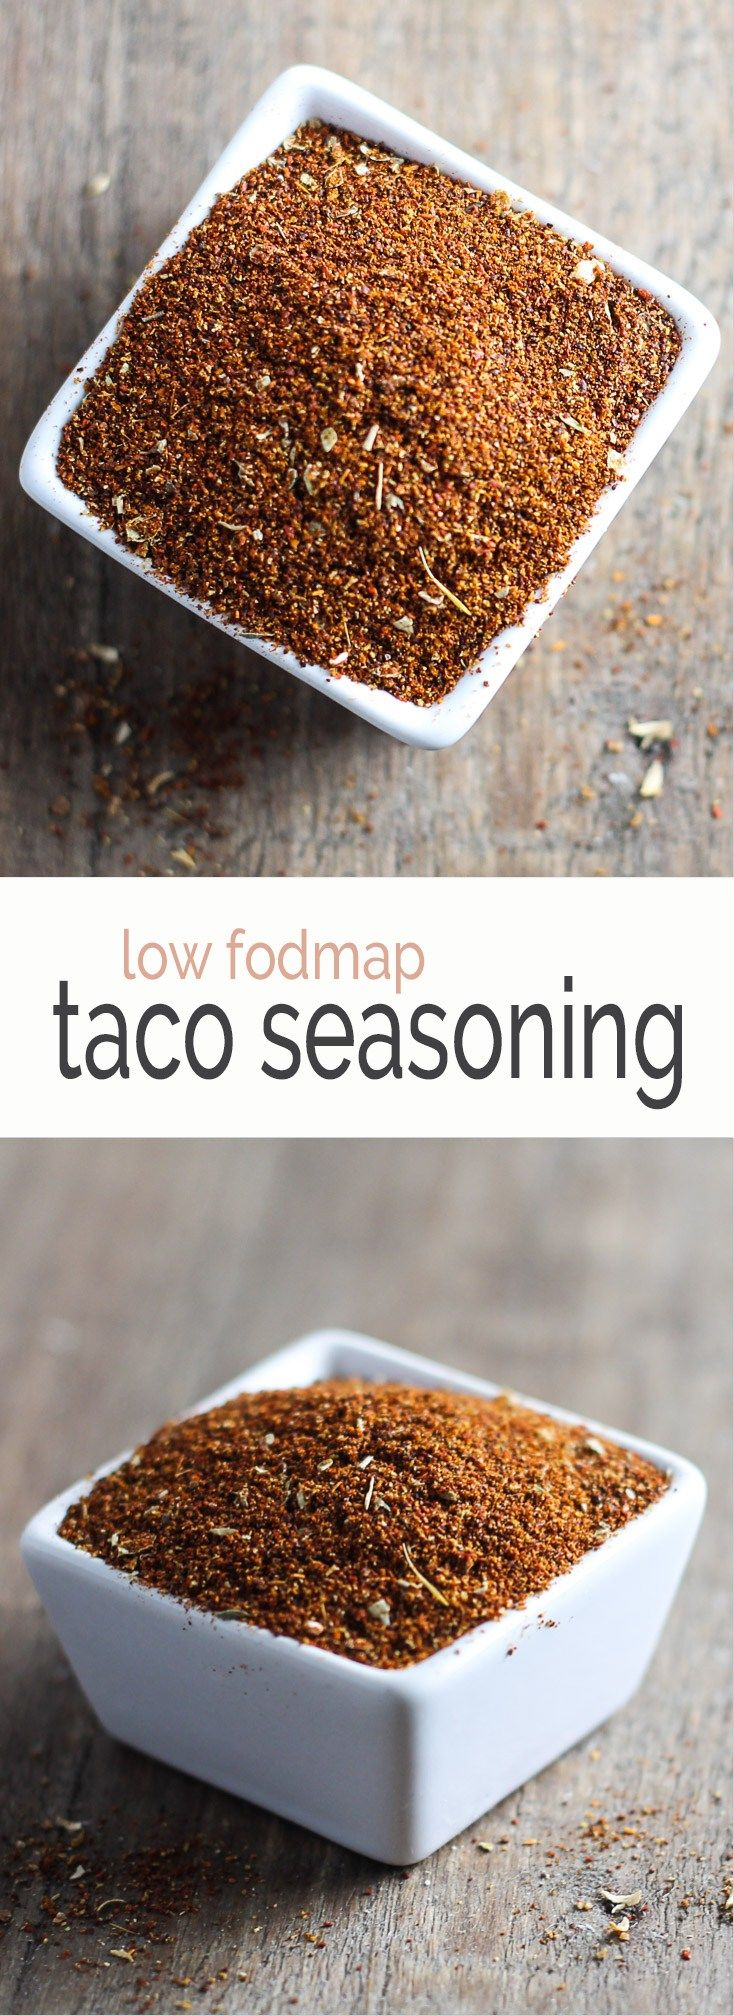 This Low Fodmap Taco Seasoning may be onion free and garlic free, but it's FILLED with flavor!